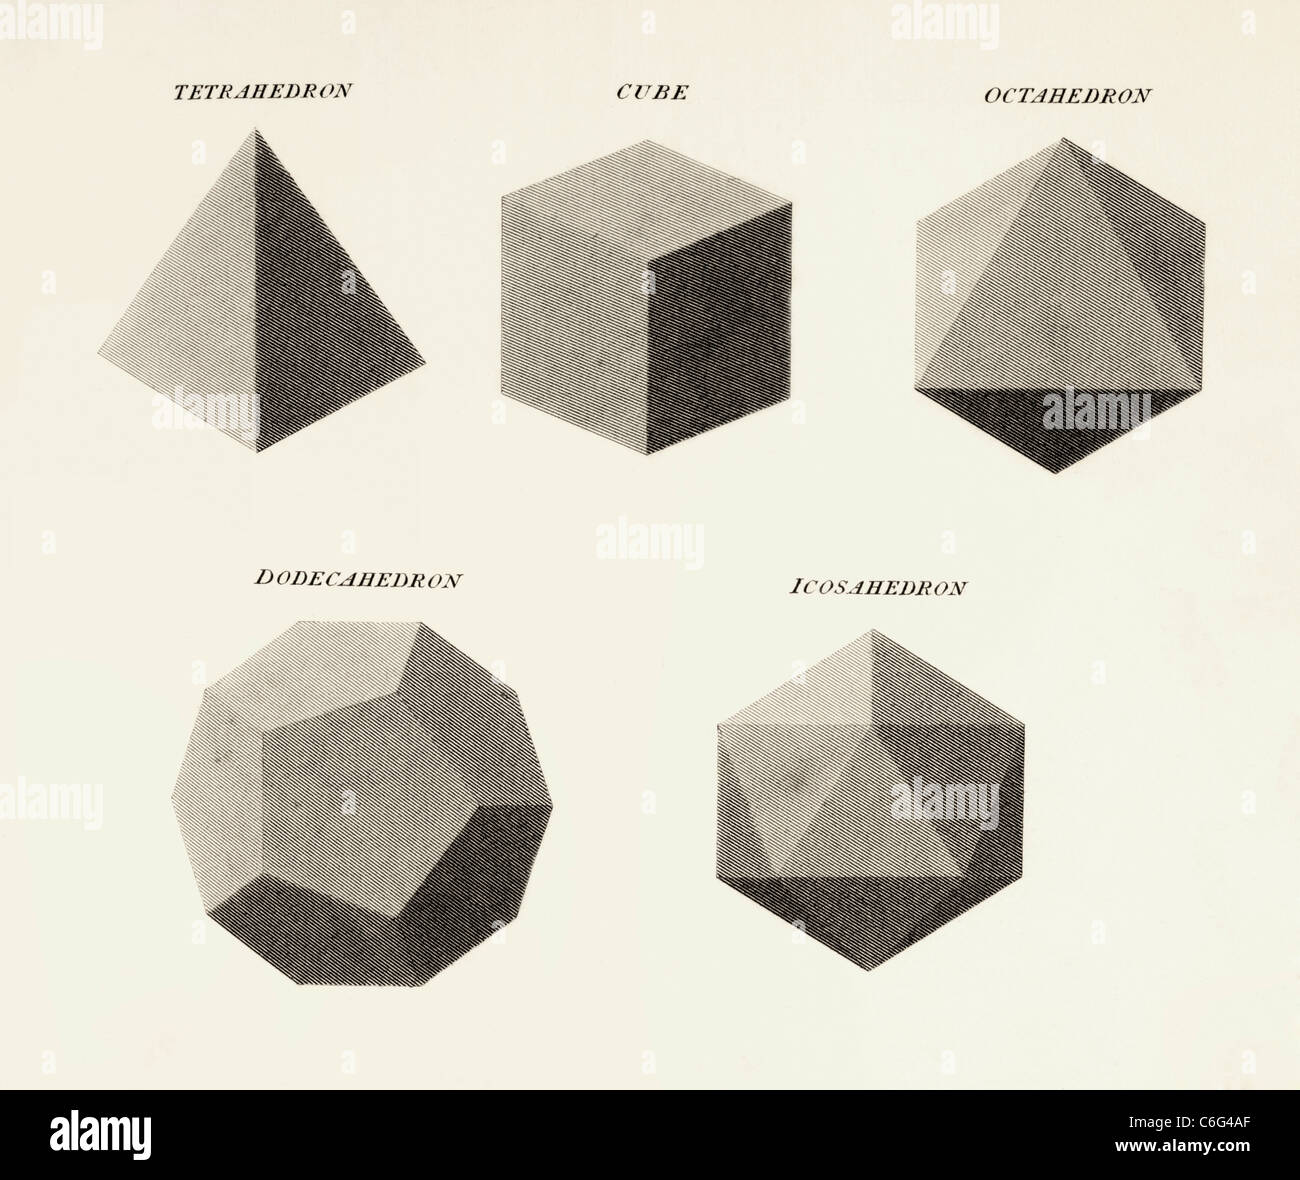 Dodecahedron Stock Photos Dodecahedron Stock Images Alamy